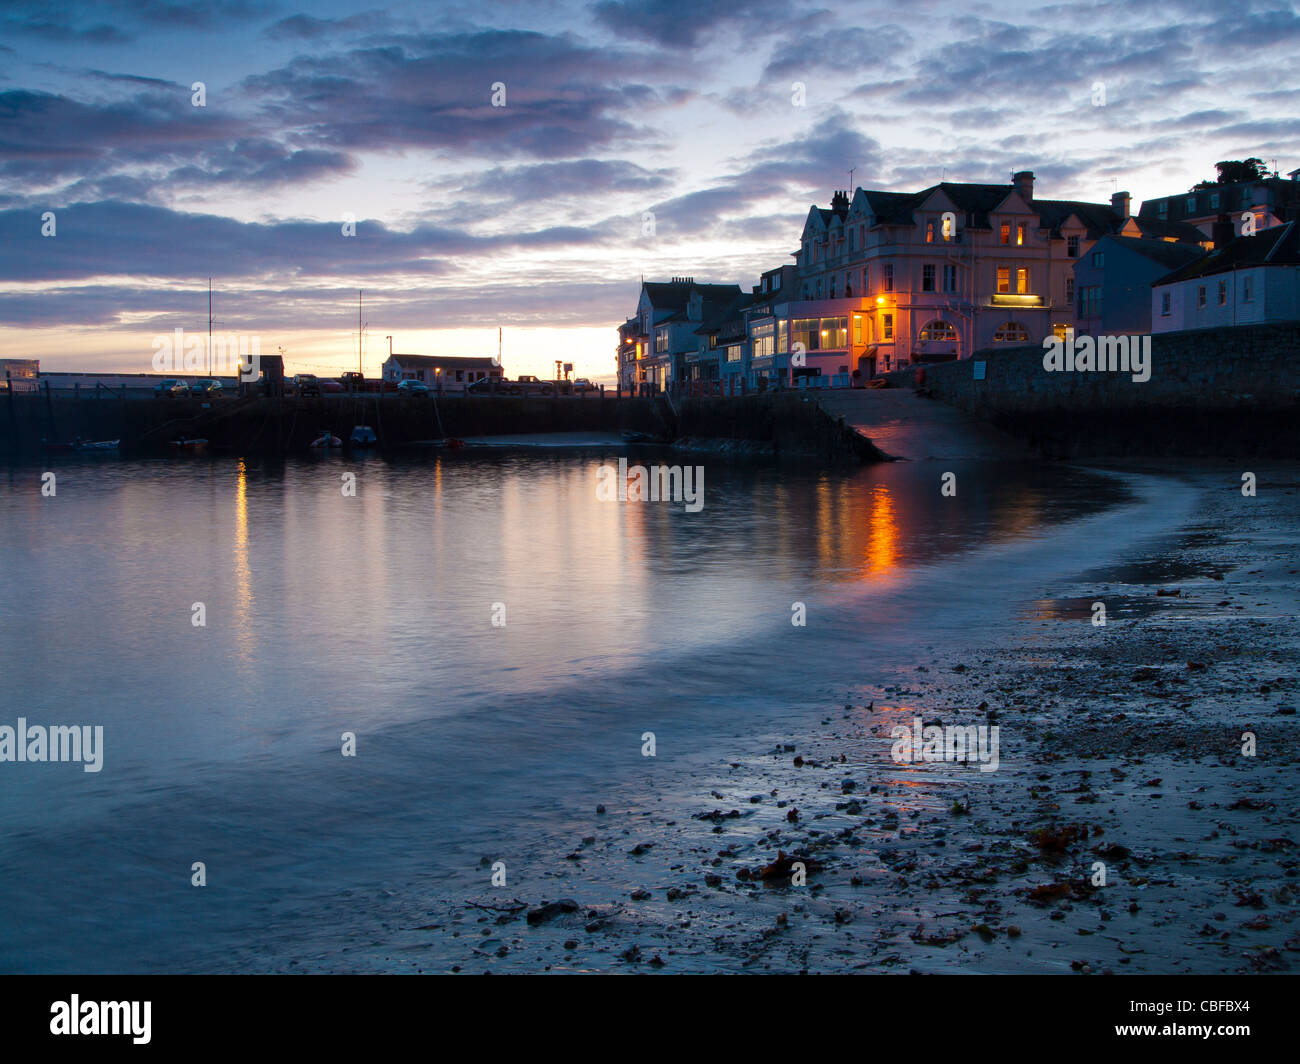 Dusk at St Mawes Cornwall England UK - Stock Image